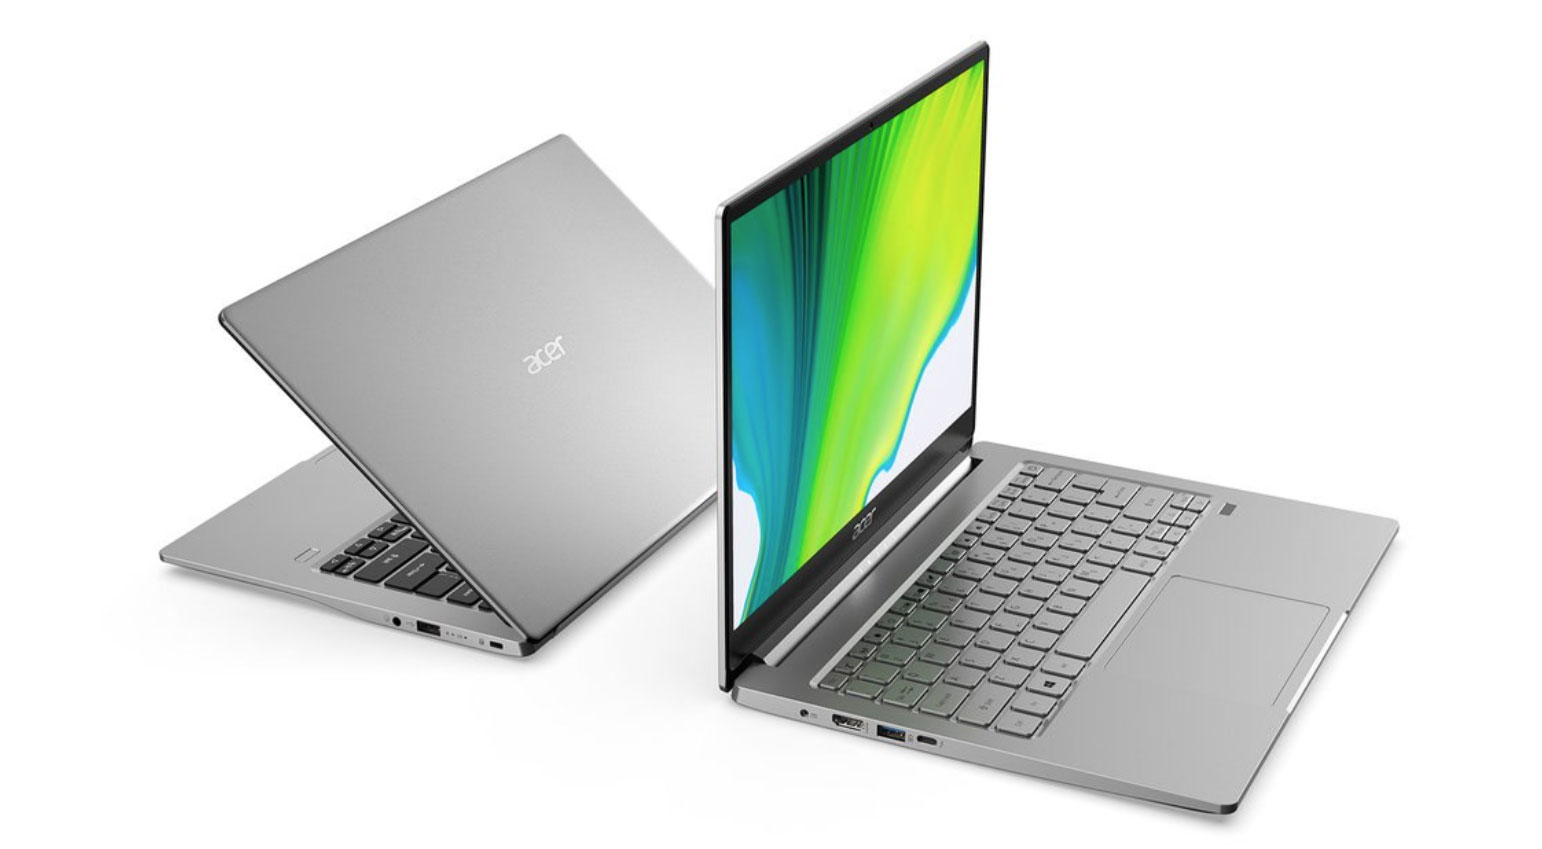 2020 Acer Swift 3 ultraprotables with AMD and Intel hardware